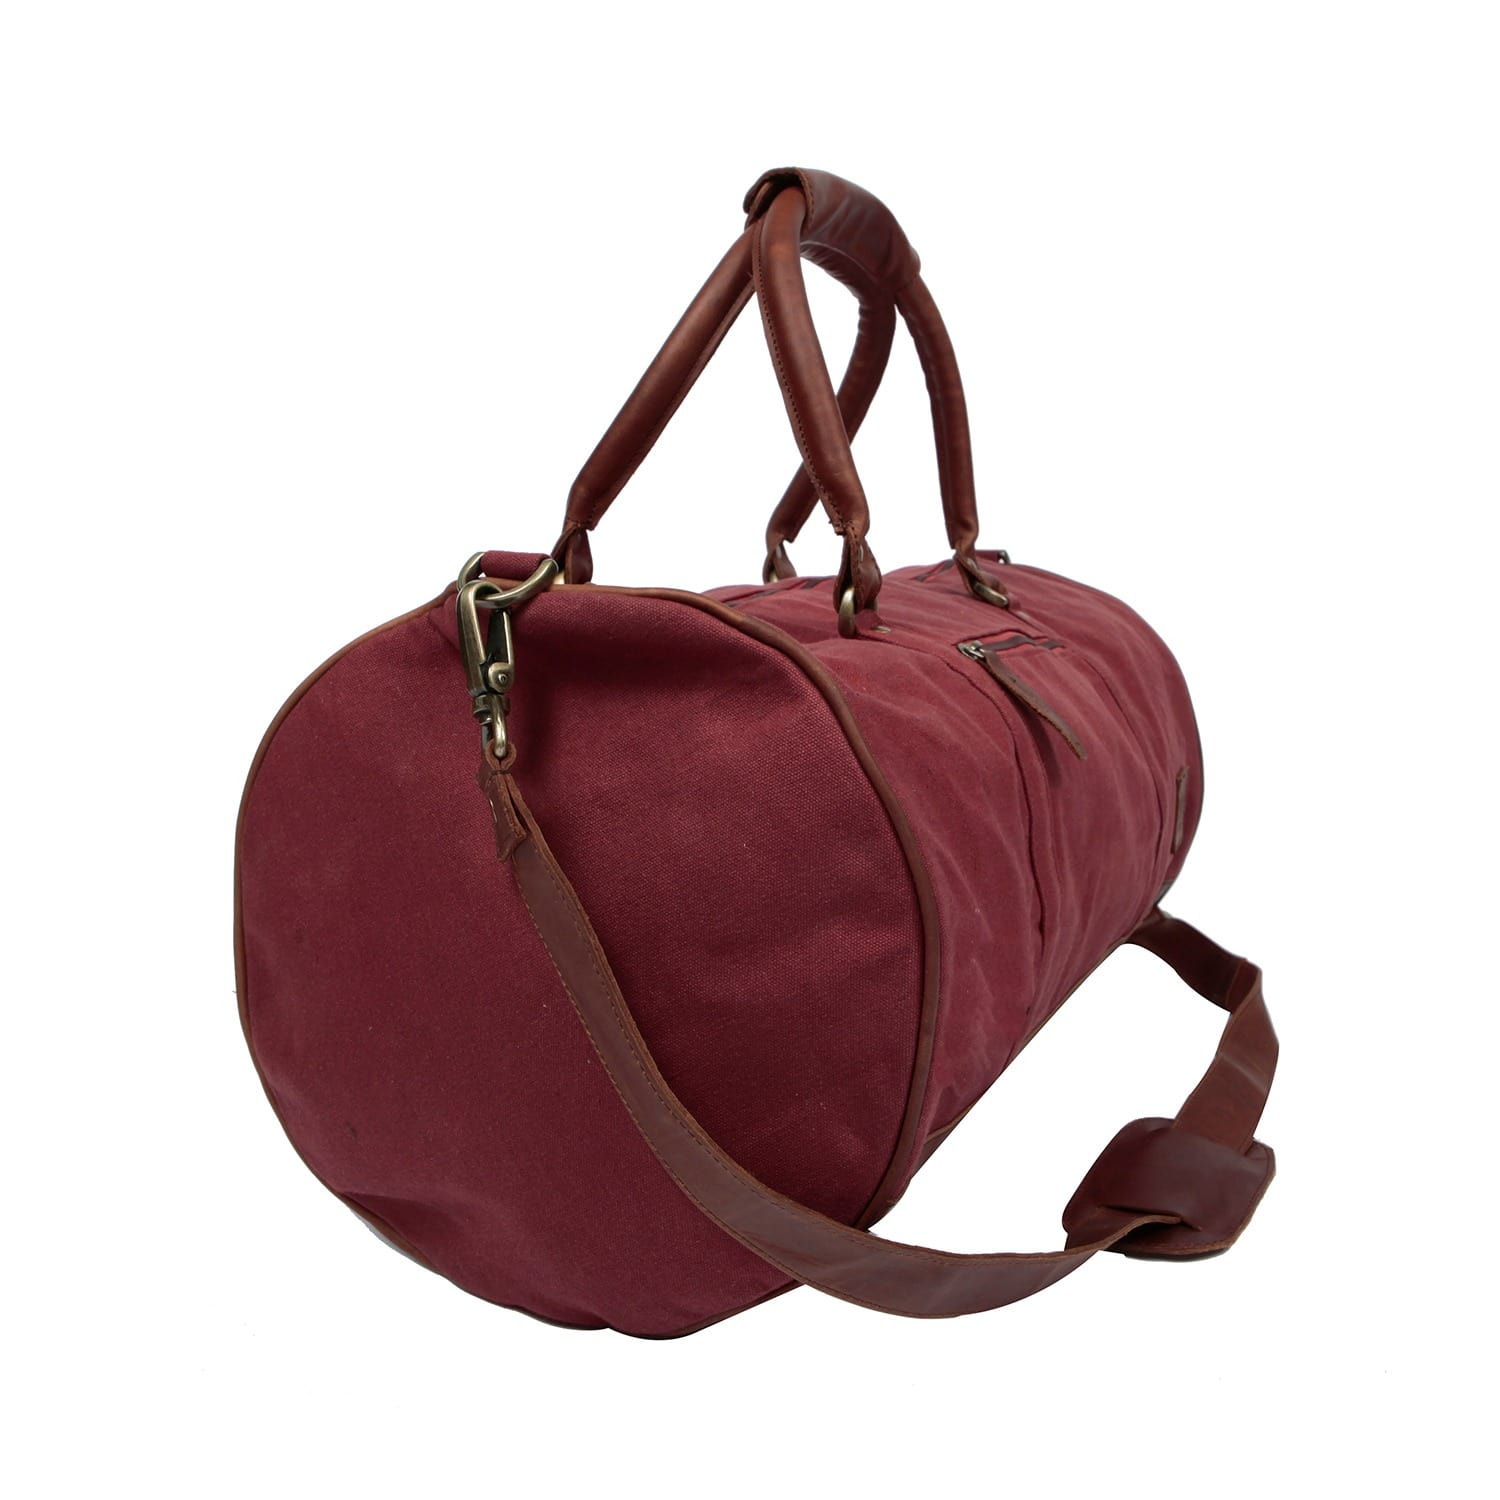 5c50d06f462f Leather Classic Duffle Overnight Gym Bag in Red Canvas image